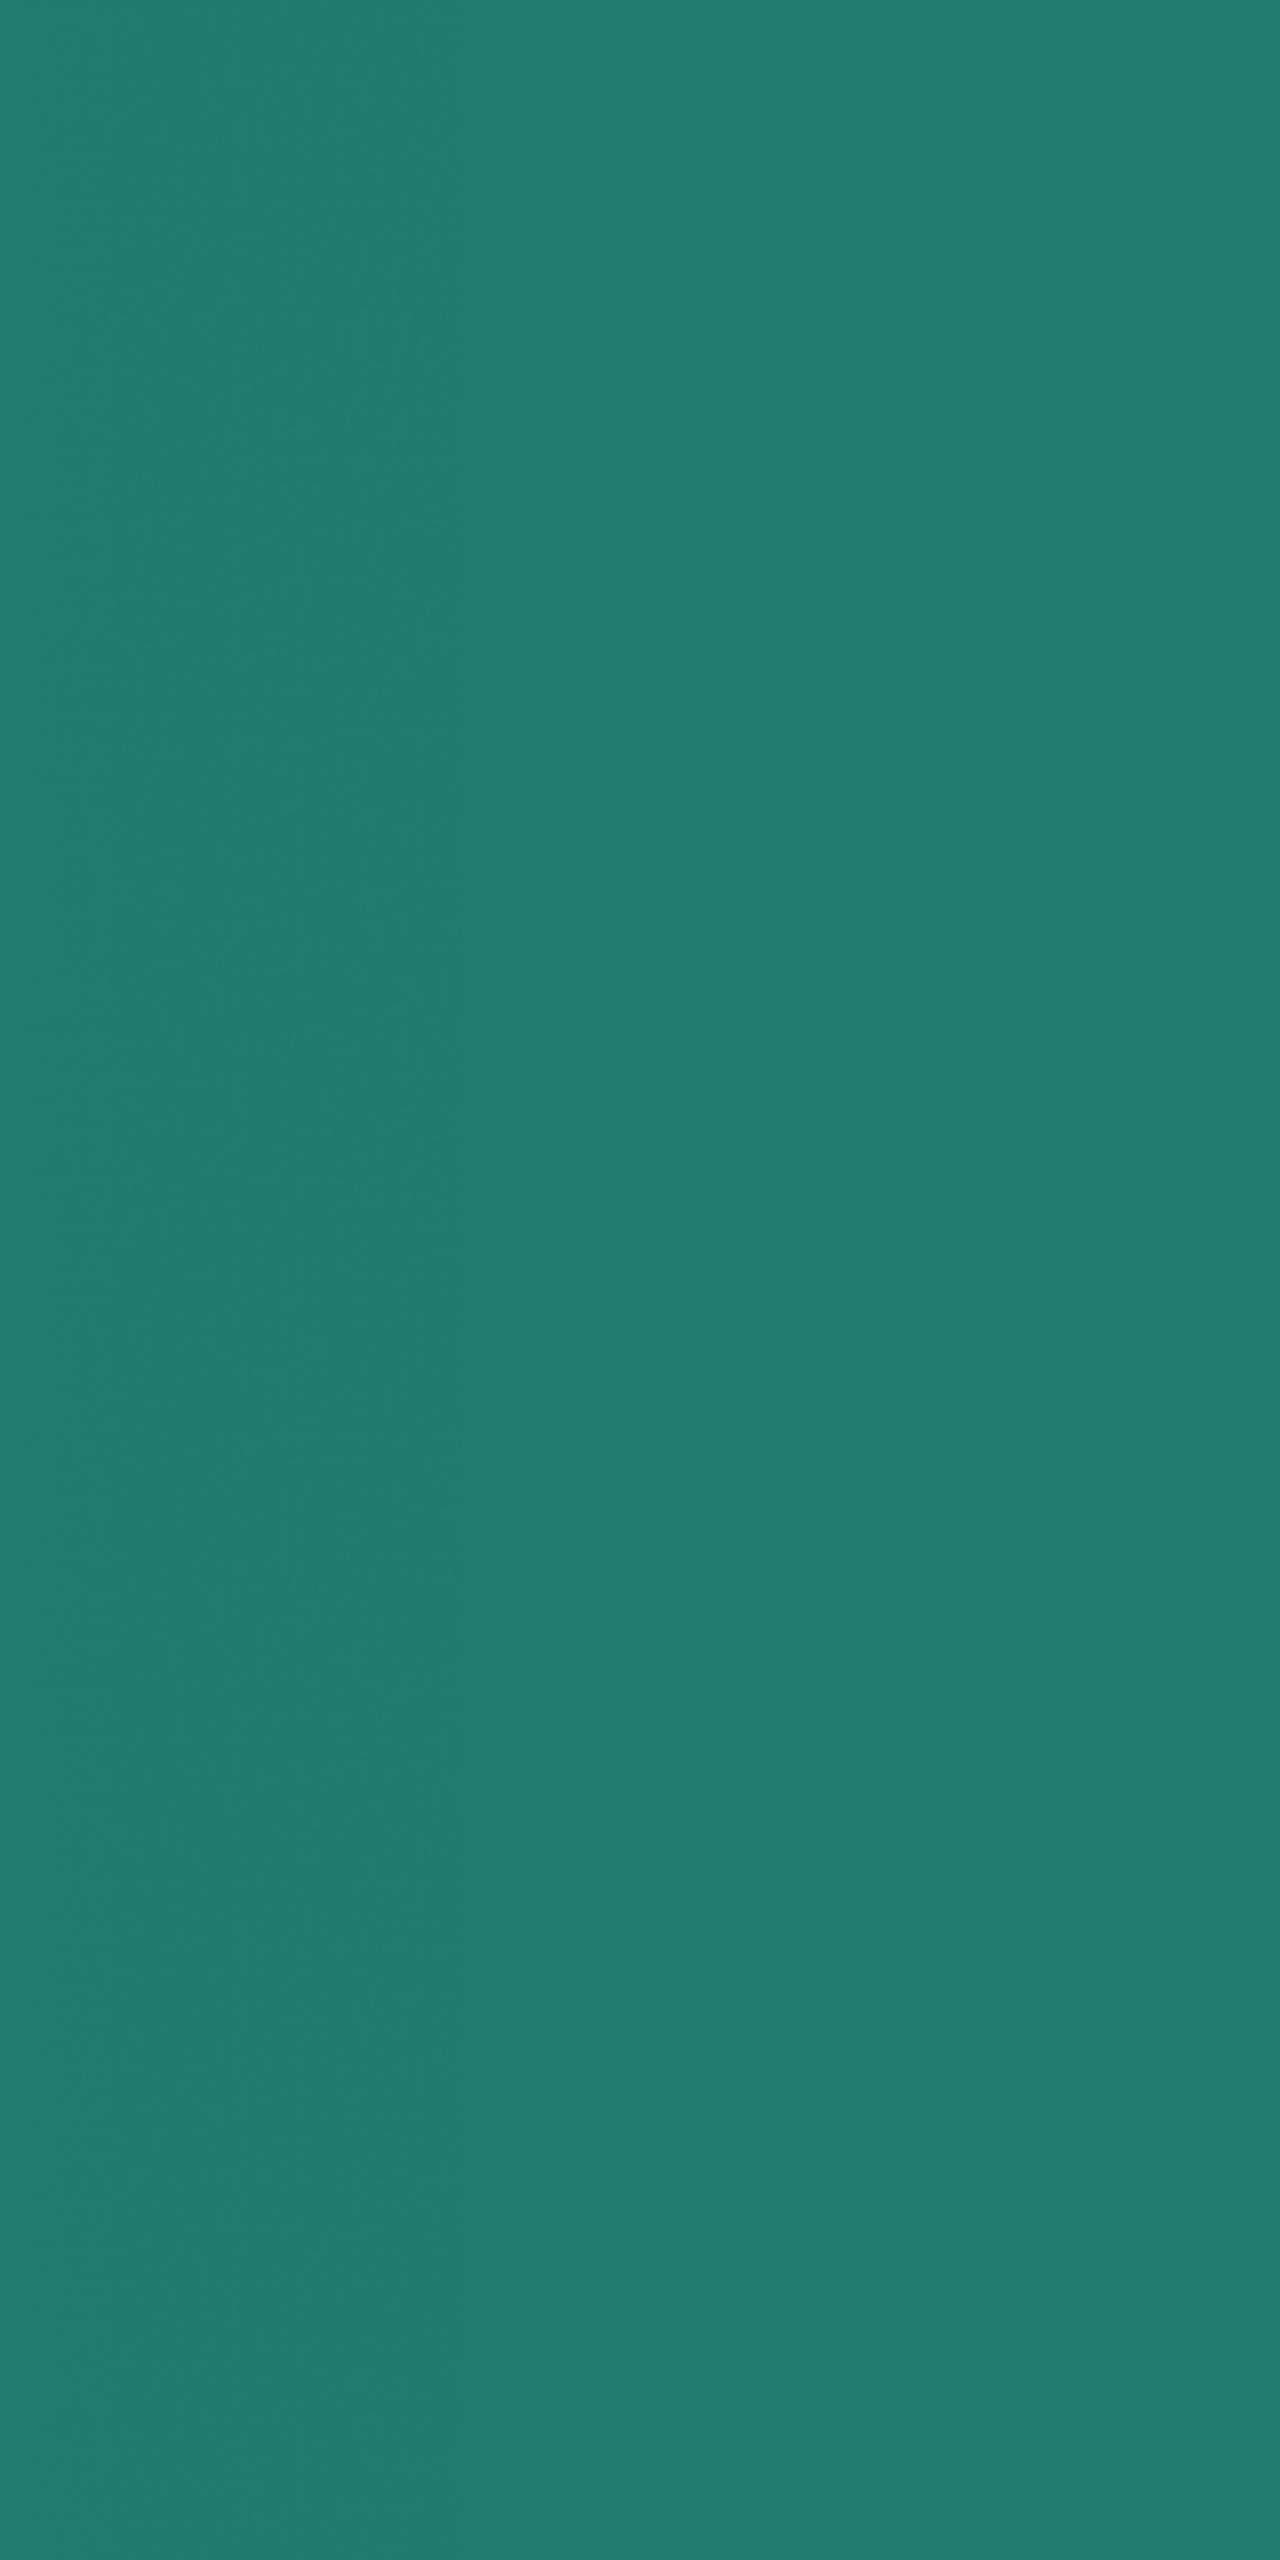 Buildtech 2.0 Bold Colors Teal Glossy 6mm 60 x 120